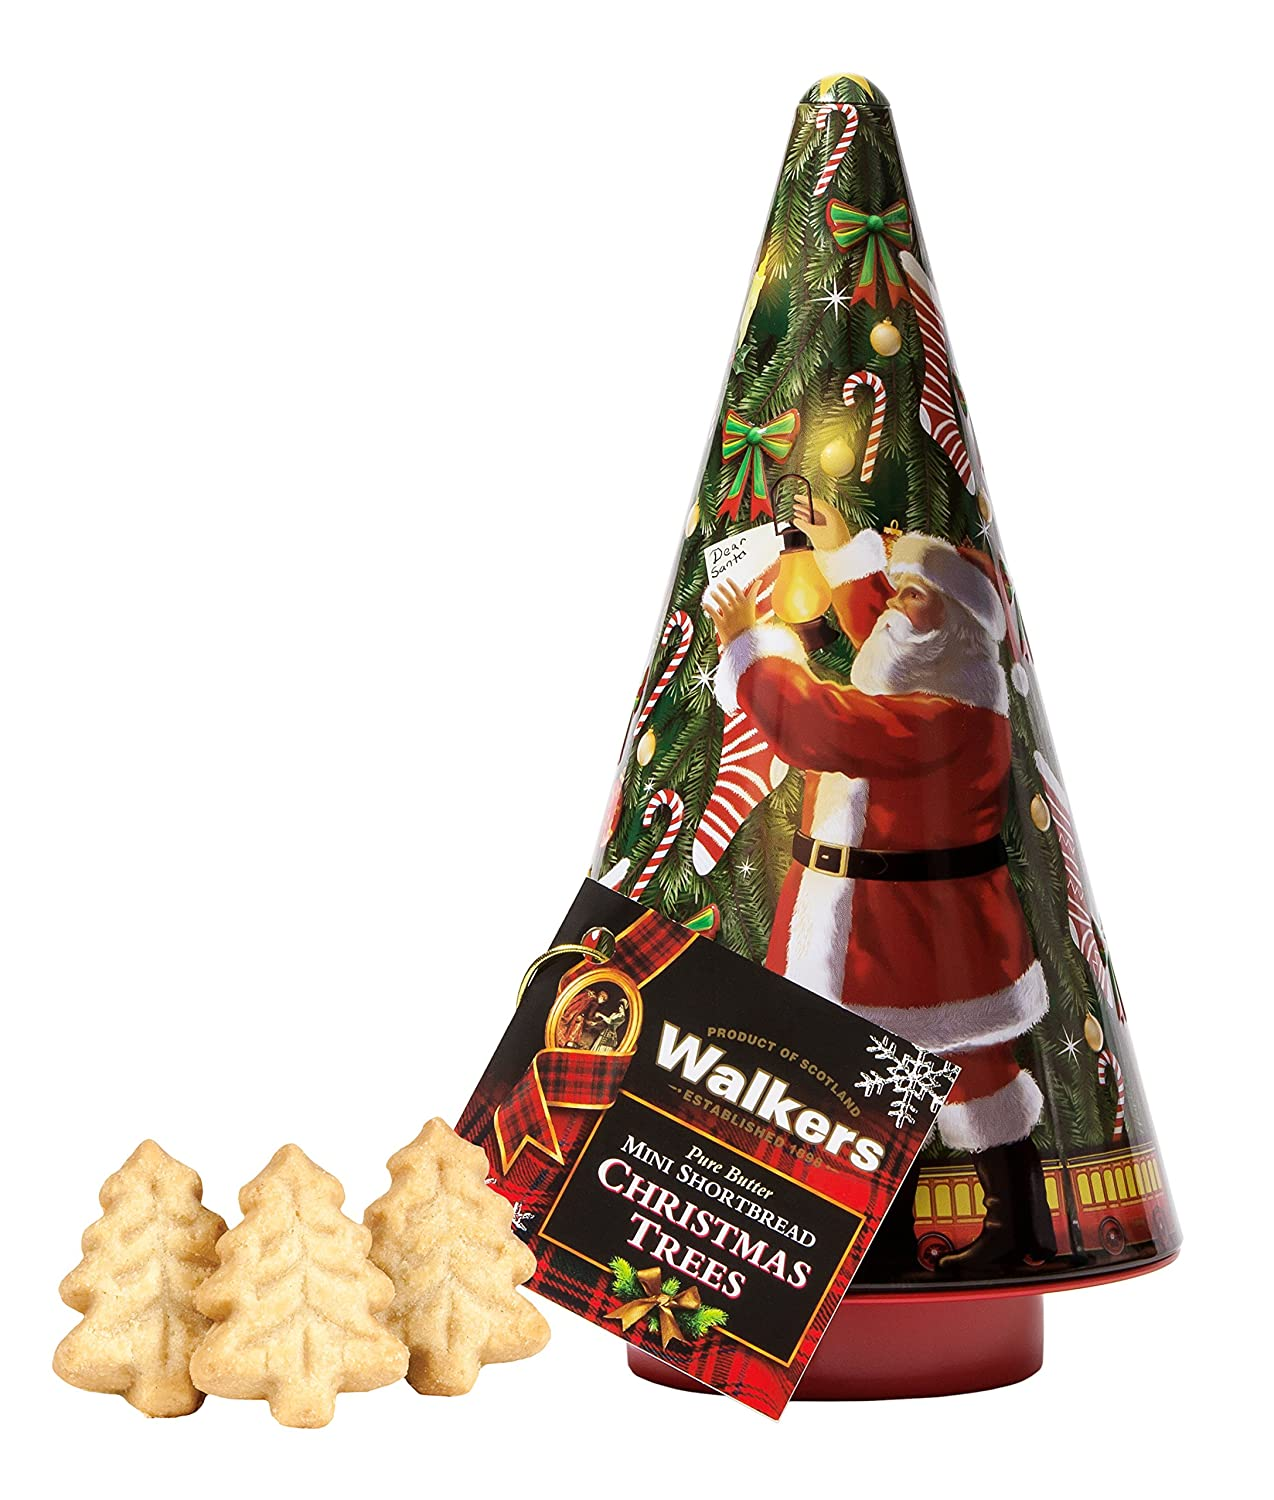 Amazon.com: Walkers Shortbread Christmas Tree Santa Cookie Tin, 4.4 ...